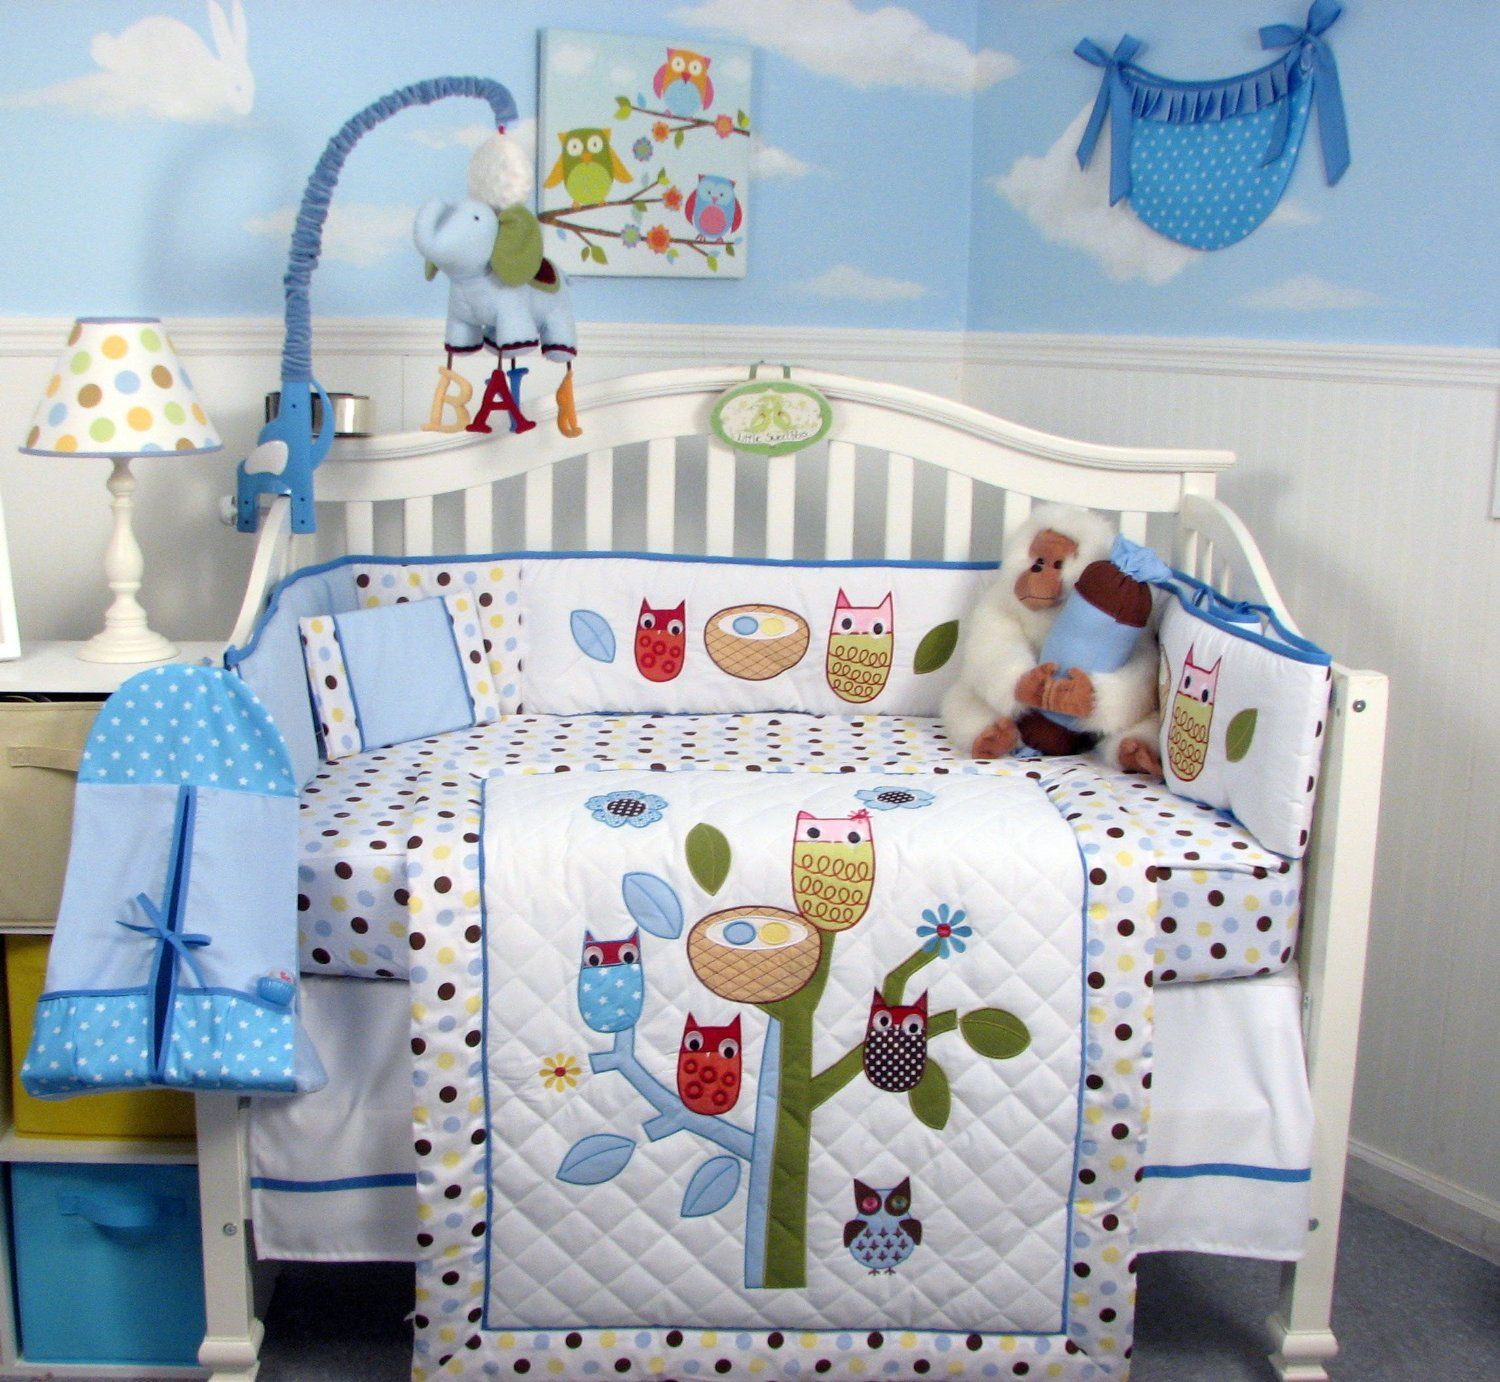 Crib bedding sale uk - 17 Best Images About Baby Boy Owl Crib Bedding On Pinterest Crib Sets Baby Boy And Baby Boy Quilts